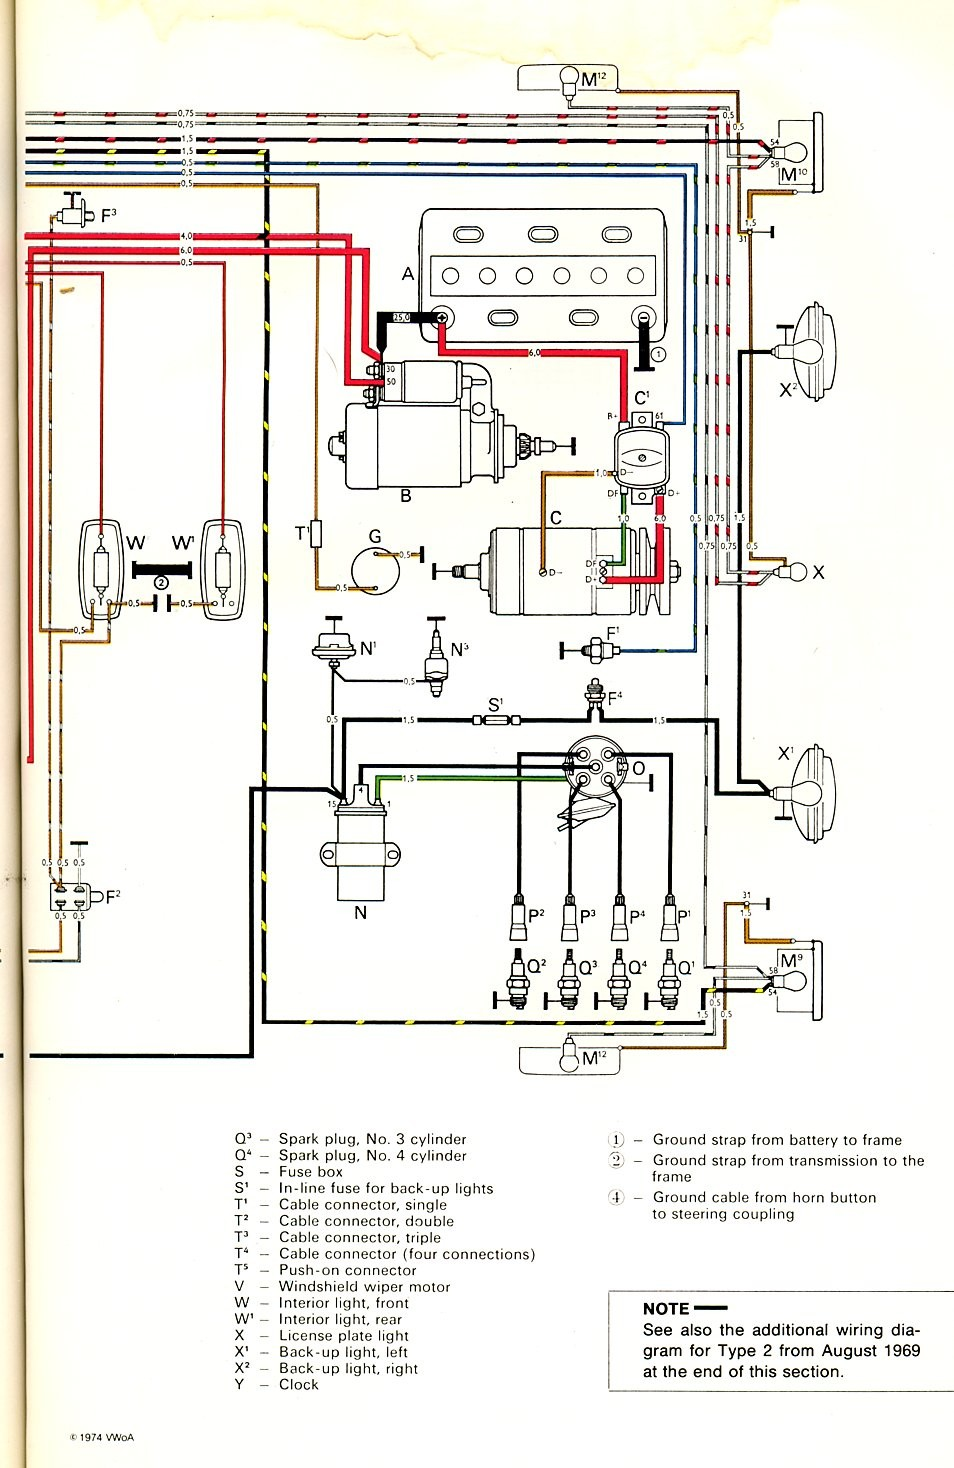 Vw Type 2 Wiring Diagram - 9.xeghaqqt.petportal.info •  Vw Wiring Diagram on 1971 vw super beetle starter diagram, 70 vw beetle, 70 vw chassis, 70 vw engine, bay window diagram, 1968 vw beetle speedometer diagram, 1970 vw electrical diagram, 74 super beetle front end diagram, vw type 3 engine diagram, vw beetle fuse box diagram, 2nd gen eclipse alternator diagram,